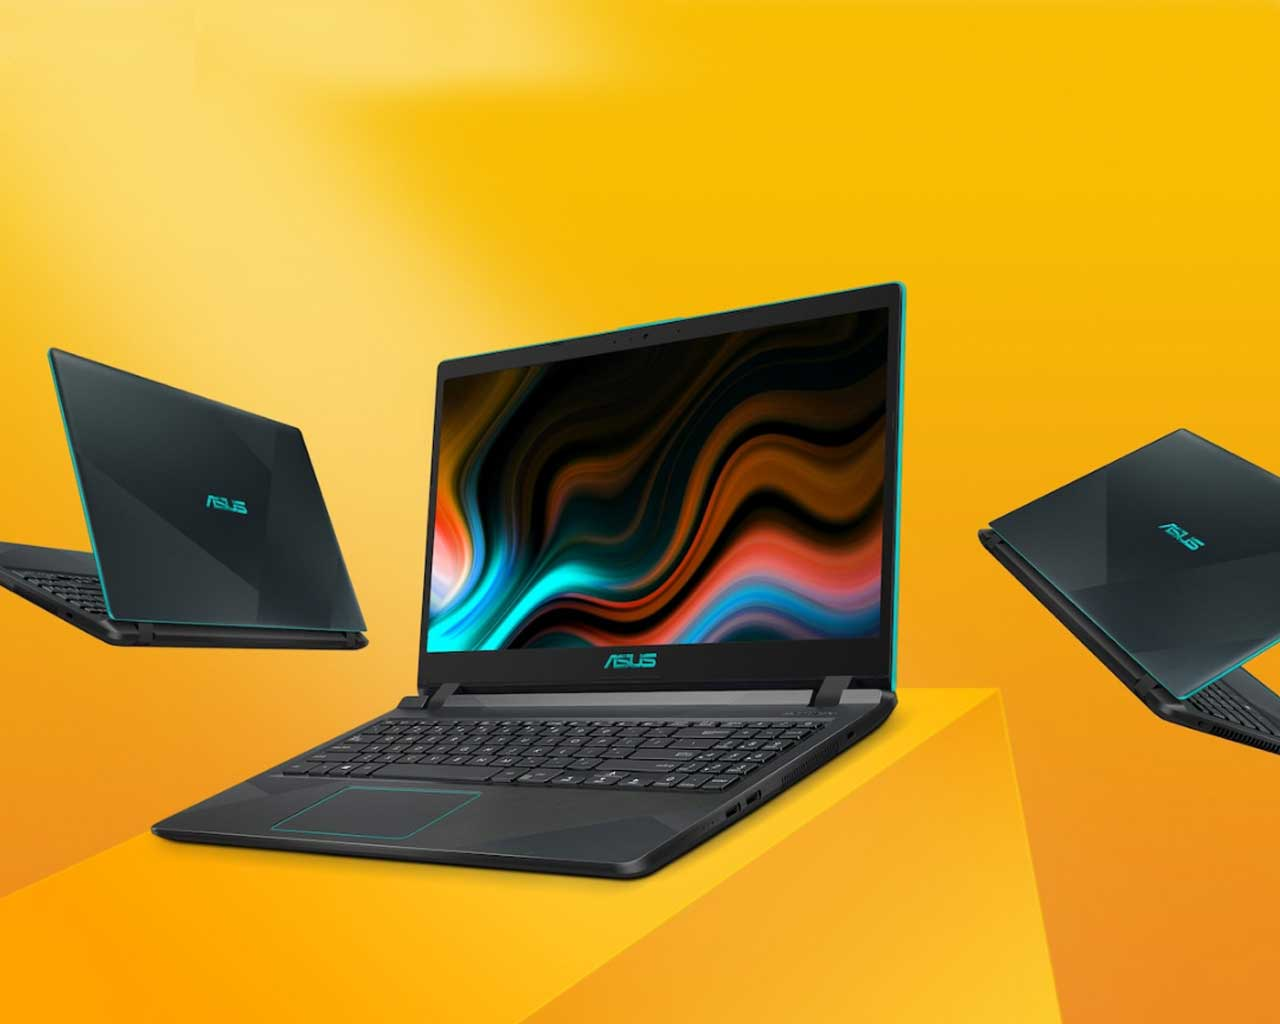 Asus X560UD 8th Gen Core I5 Black With 4GB Graphics